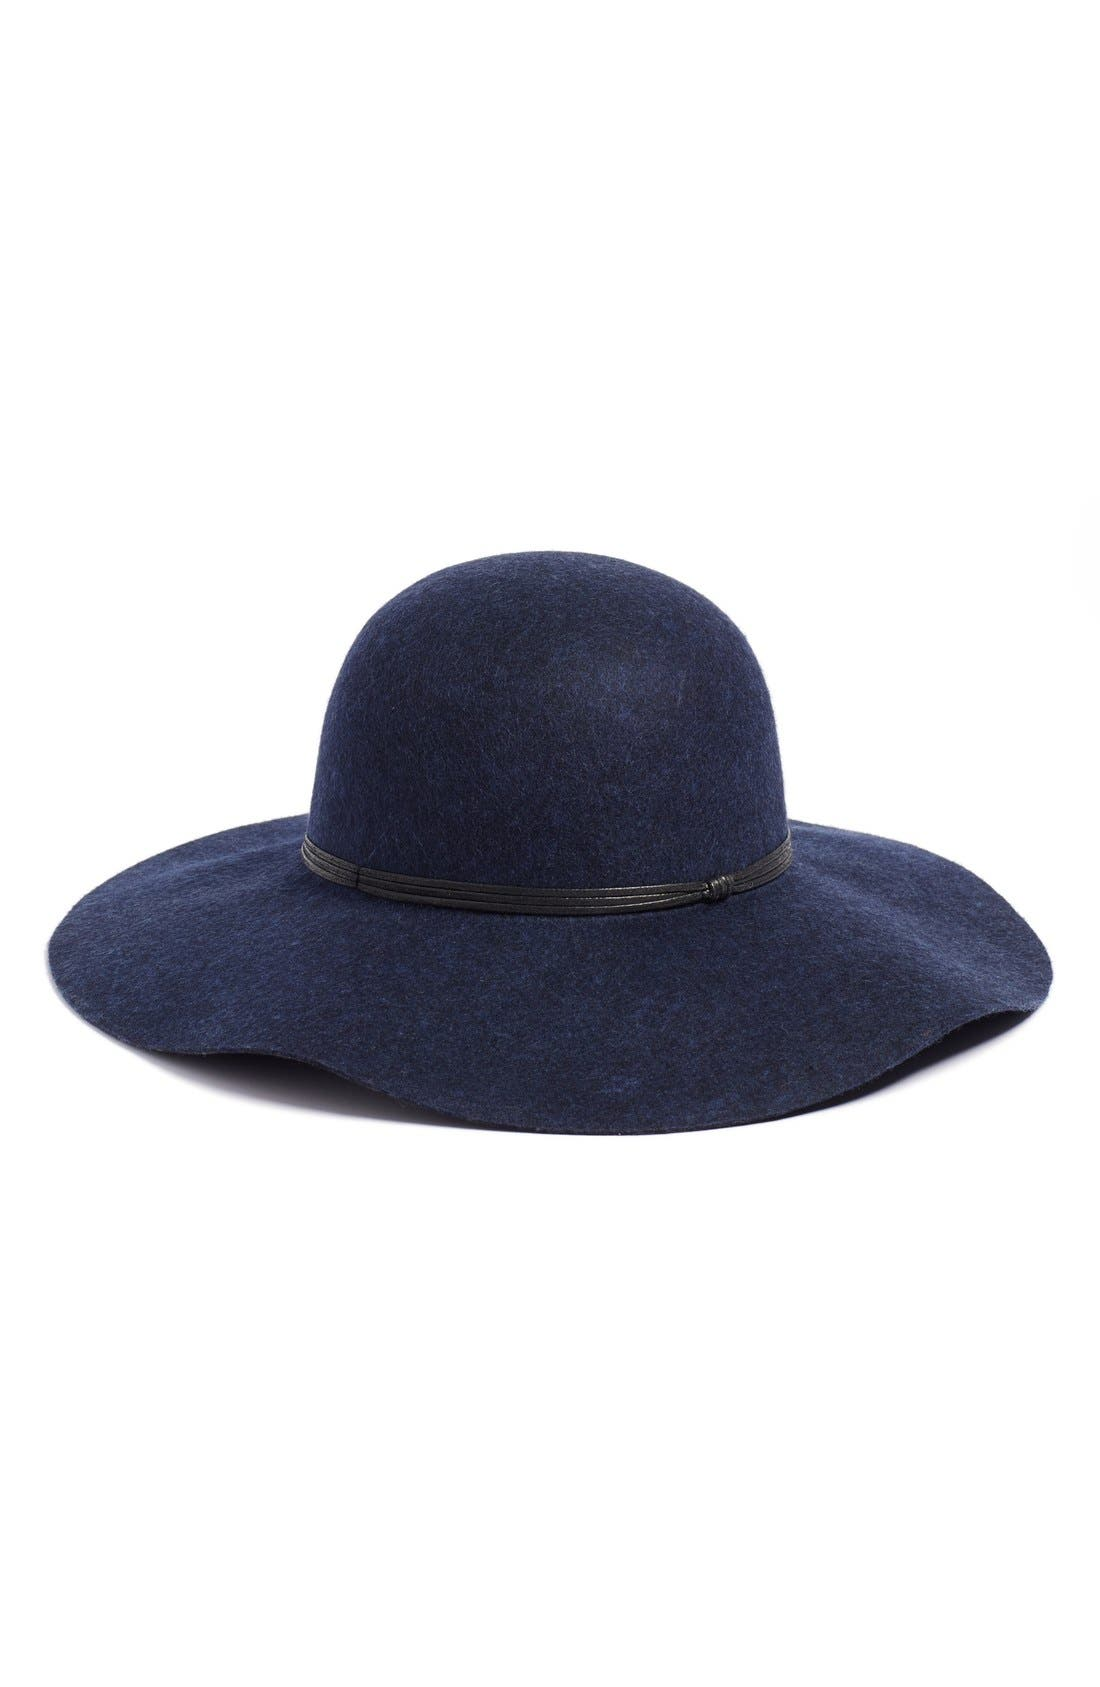 Alternate Image 1 Selected - Hinge Floppy Wool Hat